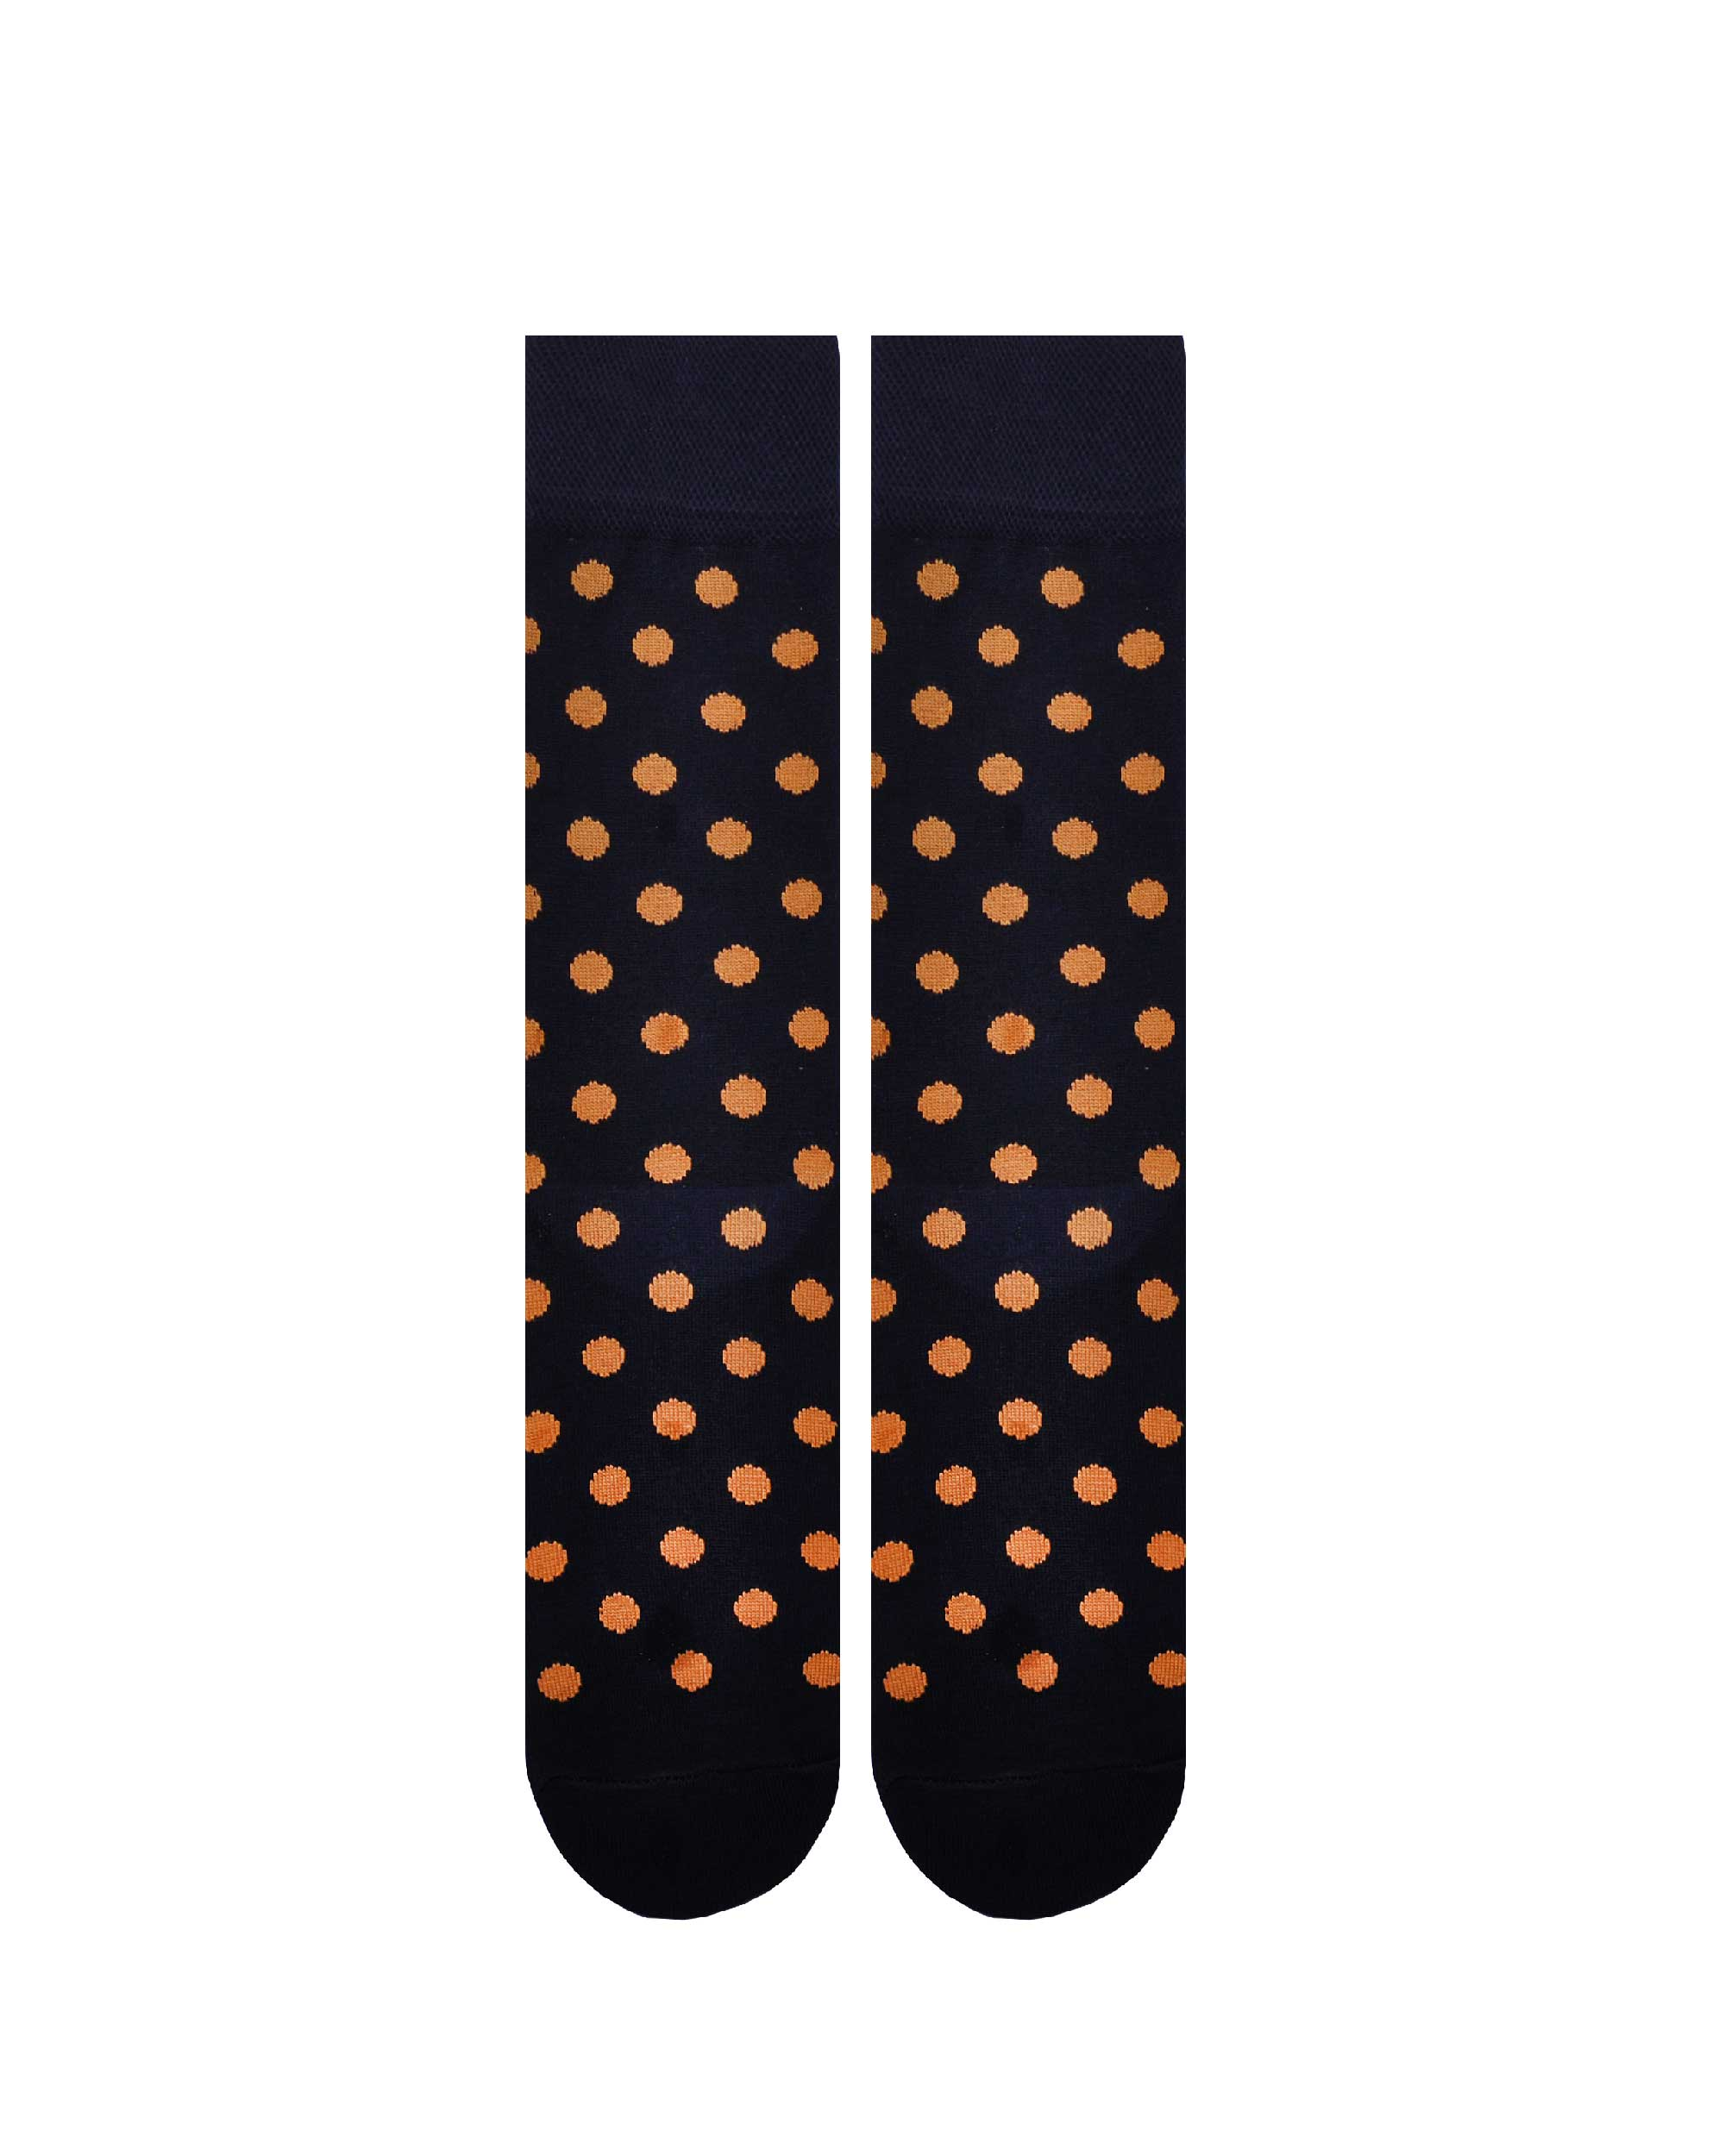 Gerehsocks-GS105